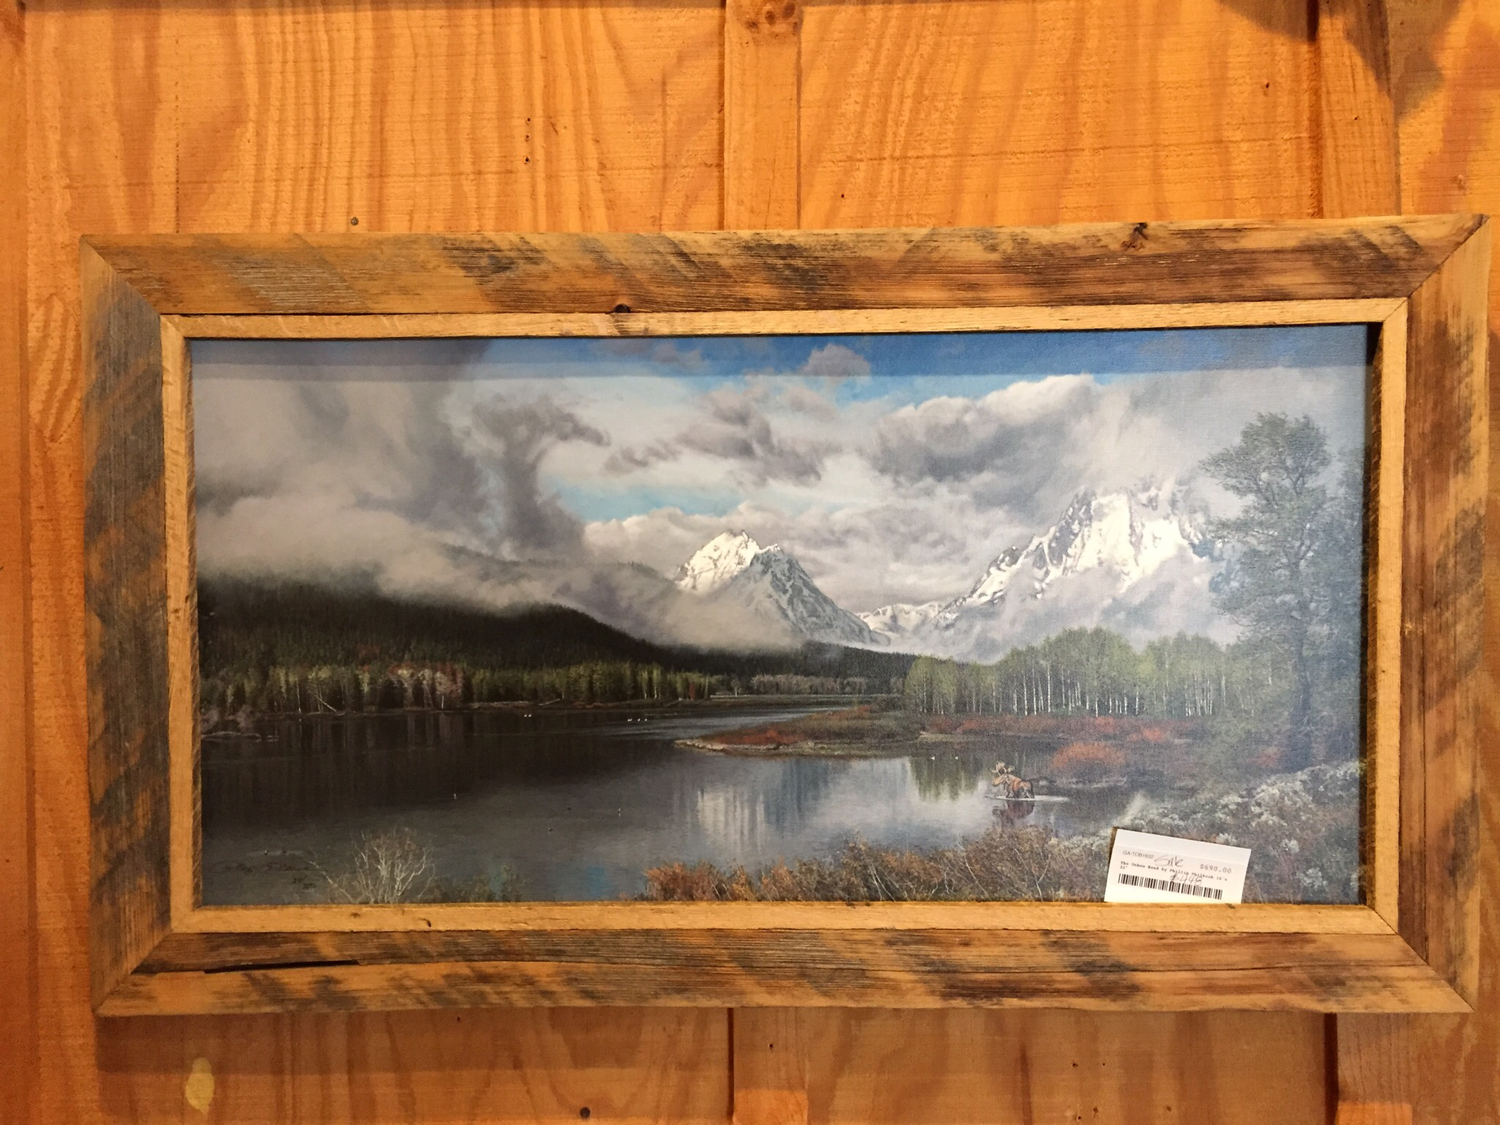 The Oxbow Bend by Phillip Philback